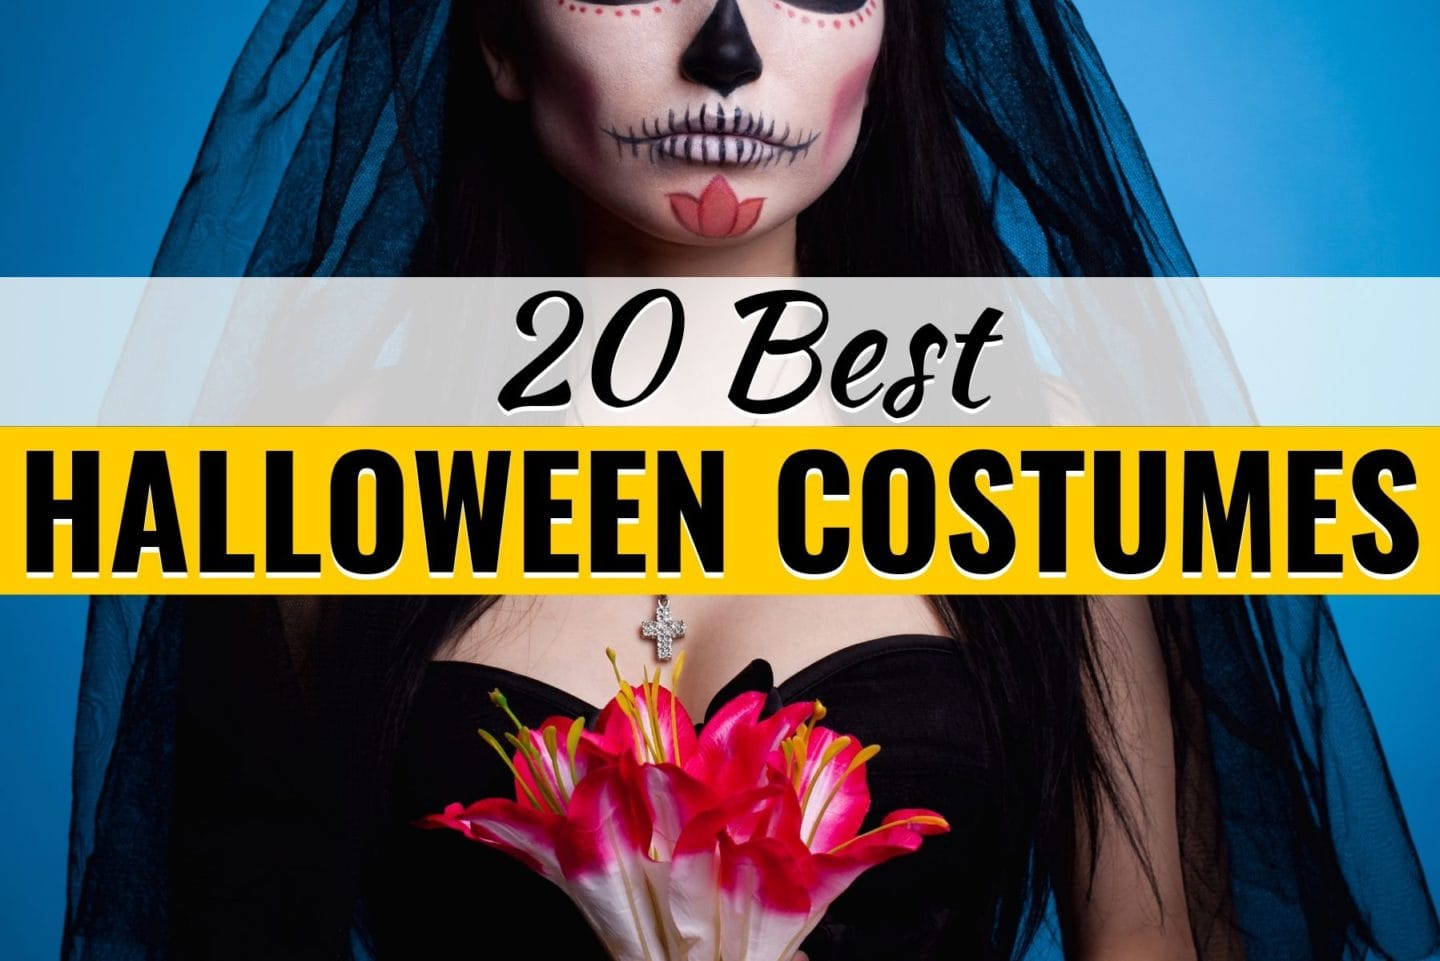 These unique last-minute costume ideas for adults are affordable, easy to get, and super fun to wear as they're inspired by the best blockbuster superhero characters of our time. Check it out!